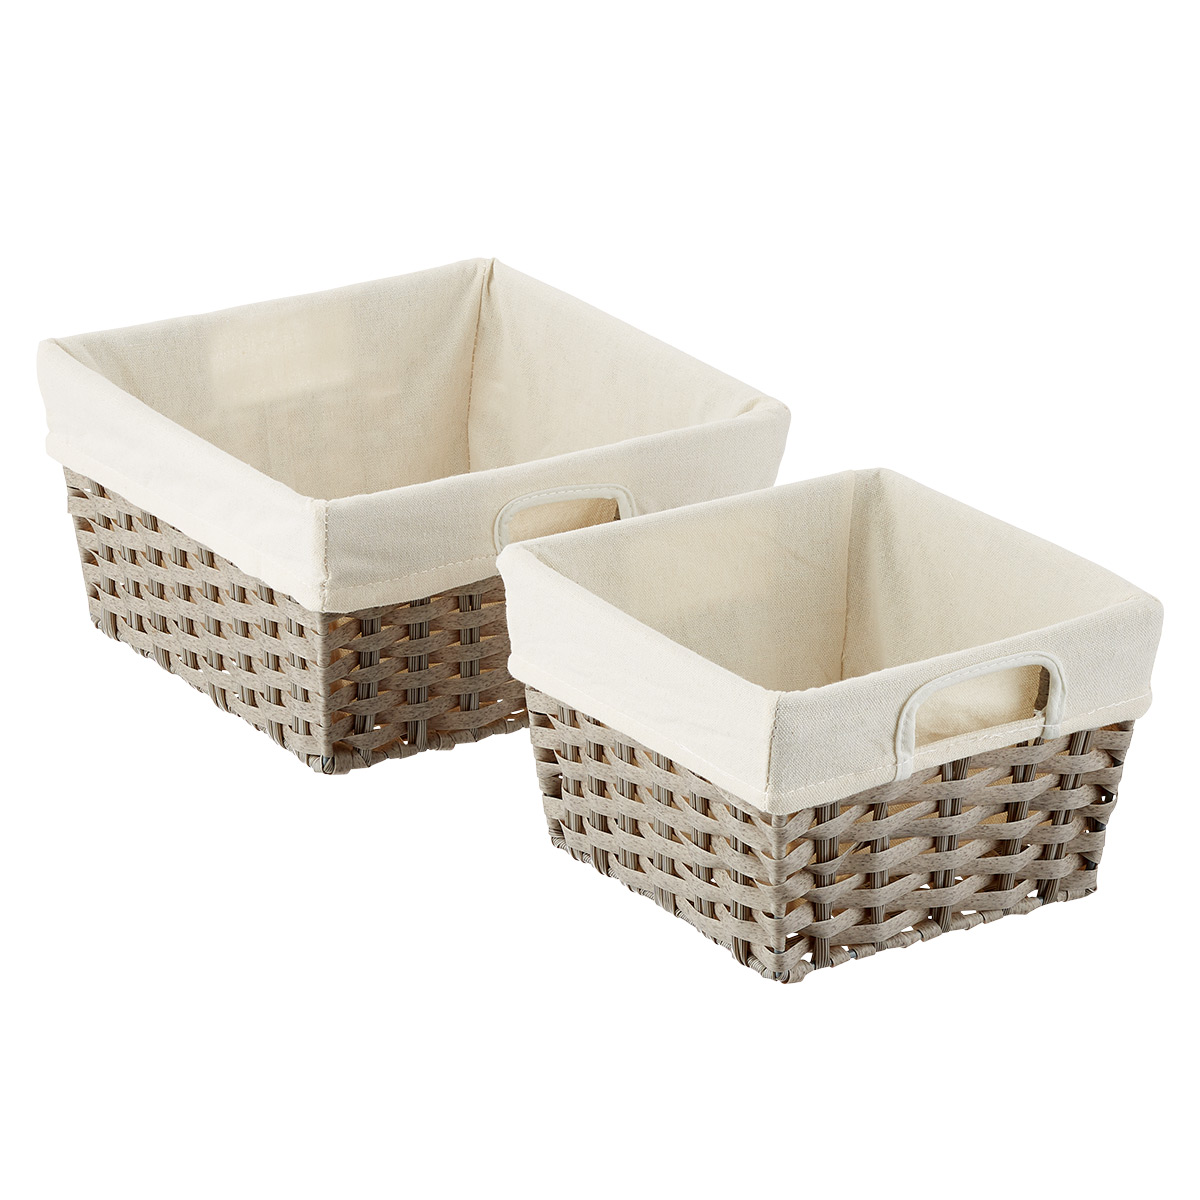 Square Montauk Kitchen Bins